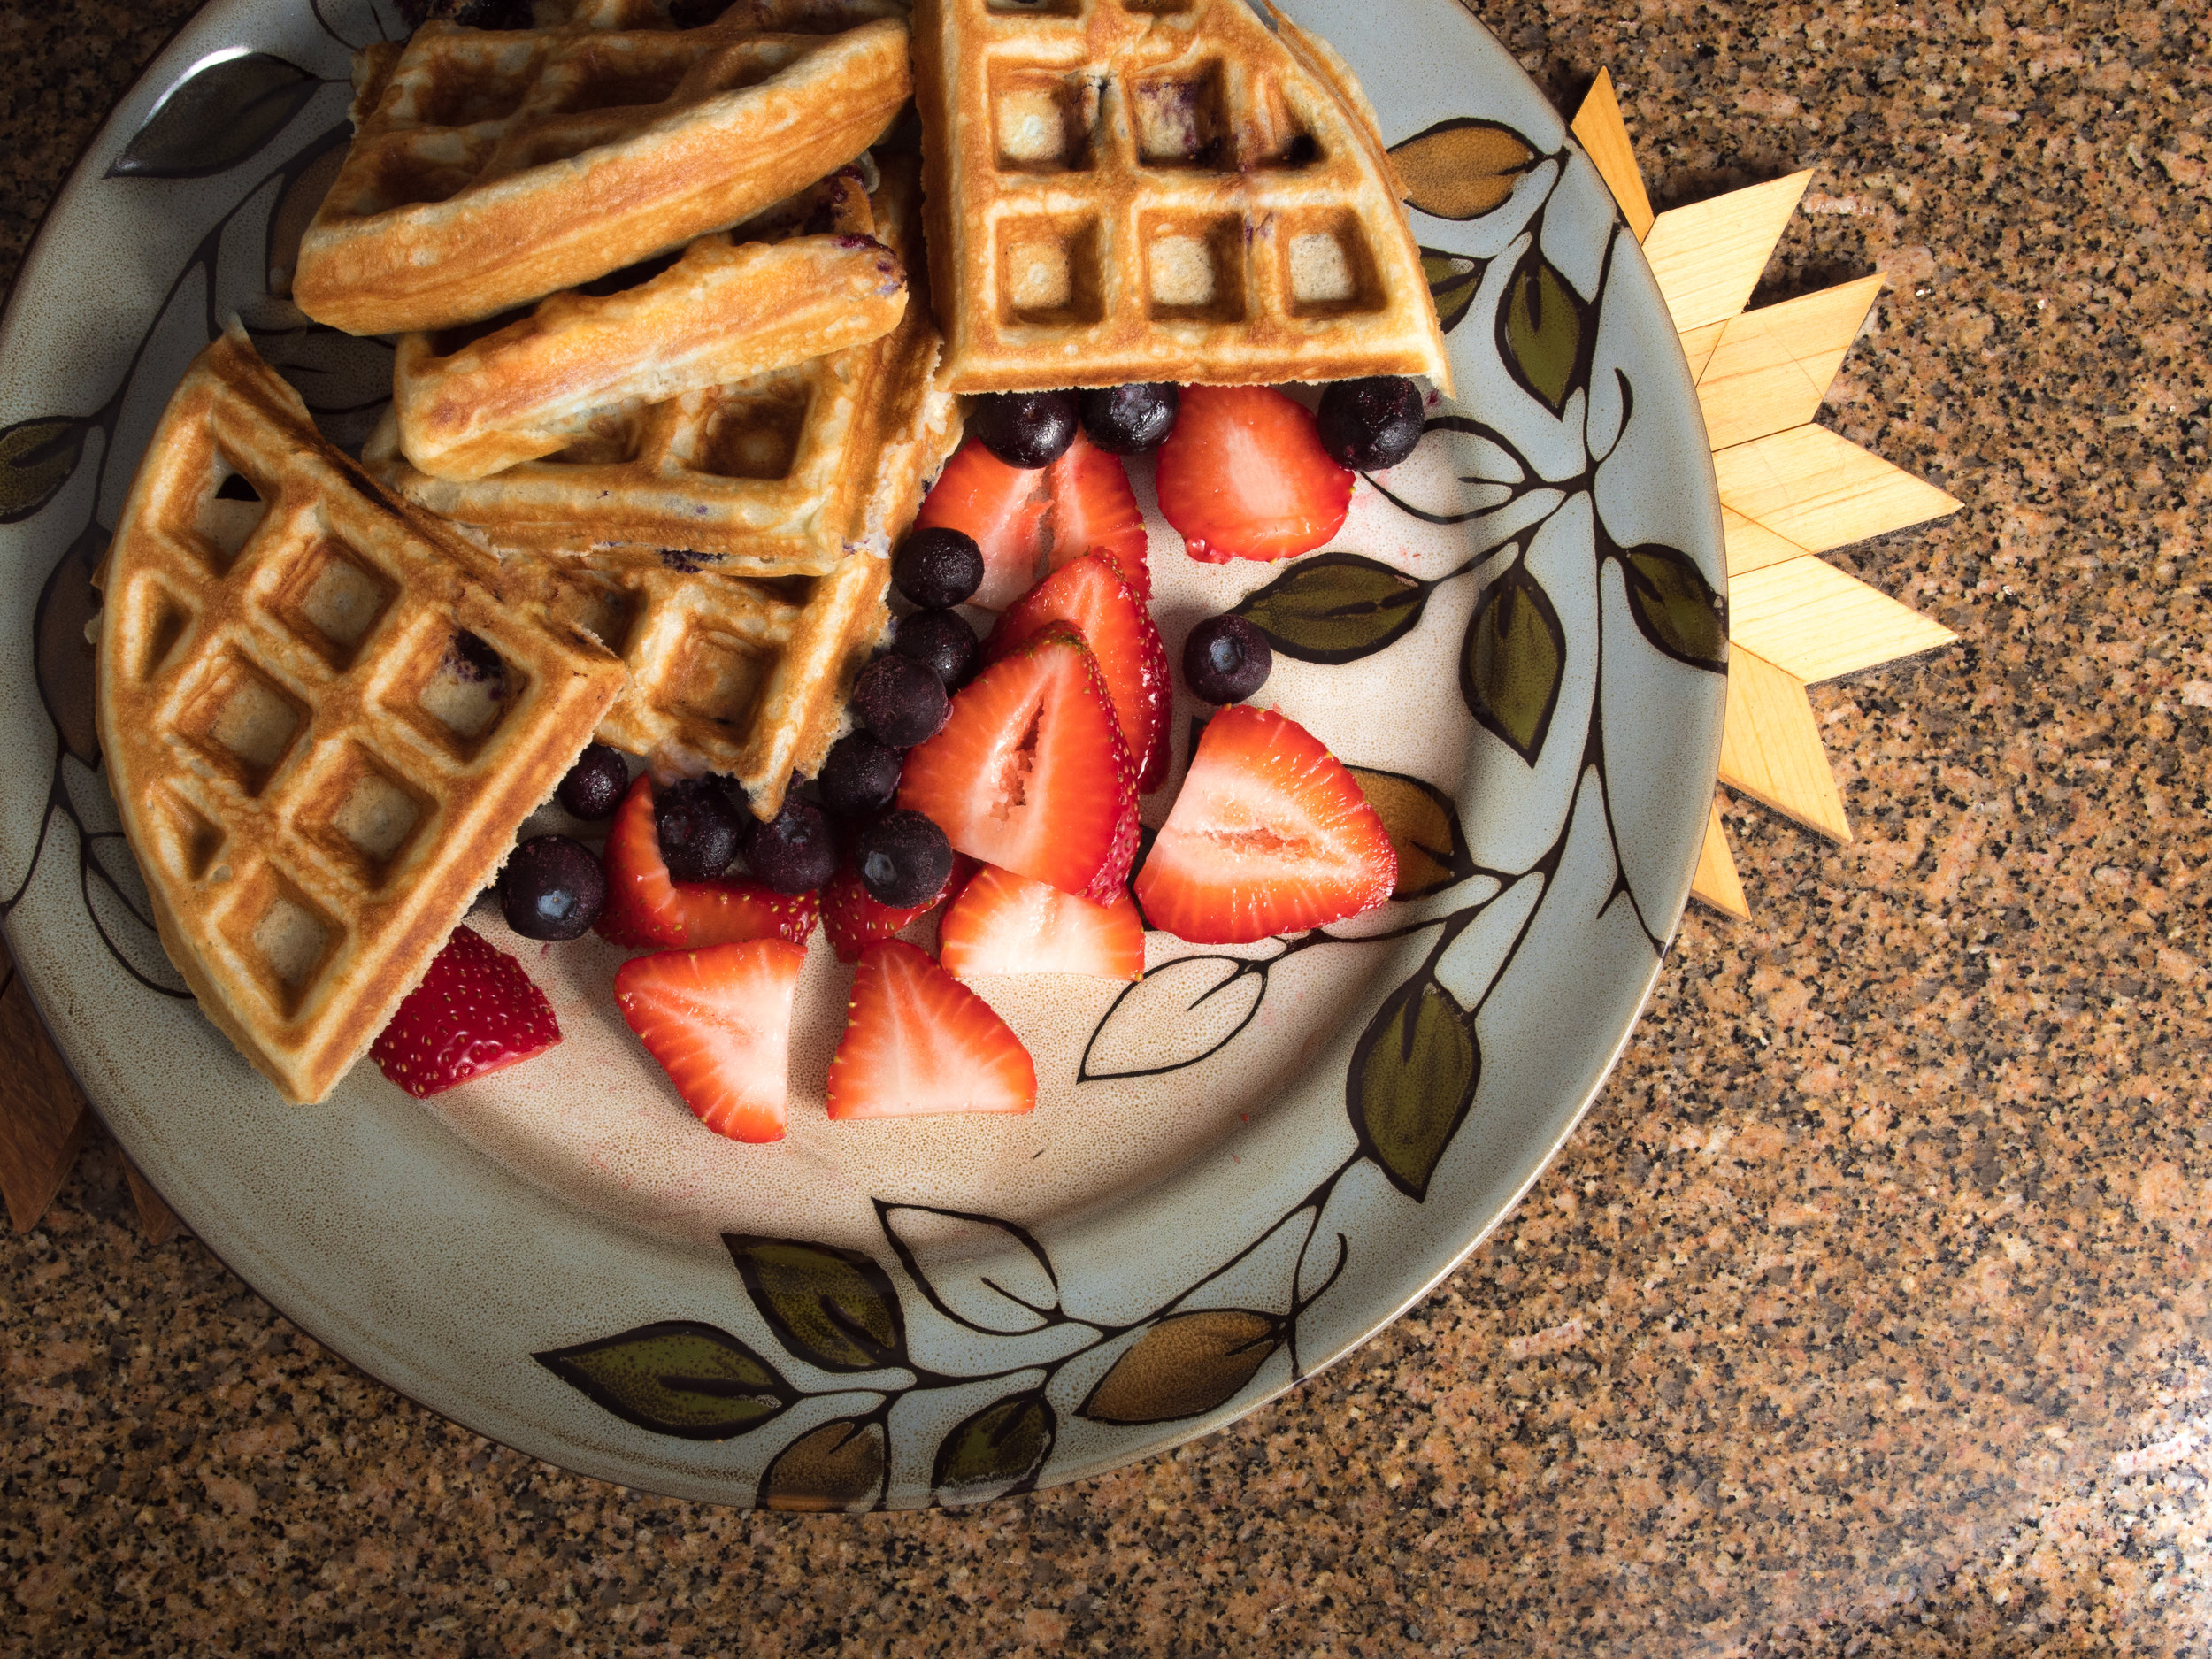 Produce - 9-14-18 - waffles and strawberries - 1 - 72ppi.jpg